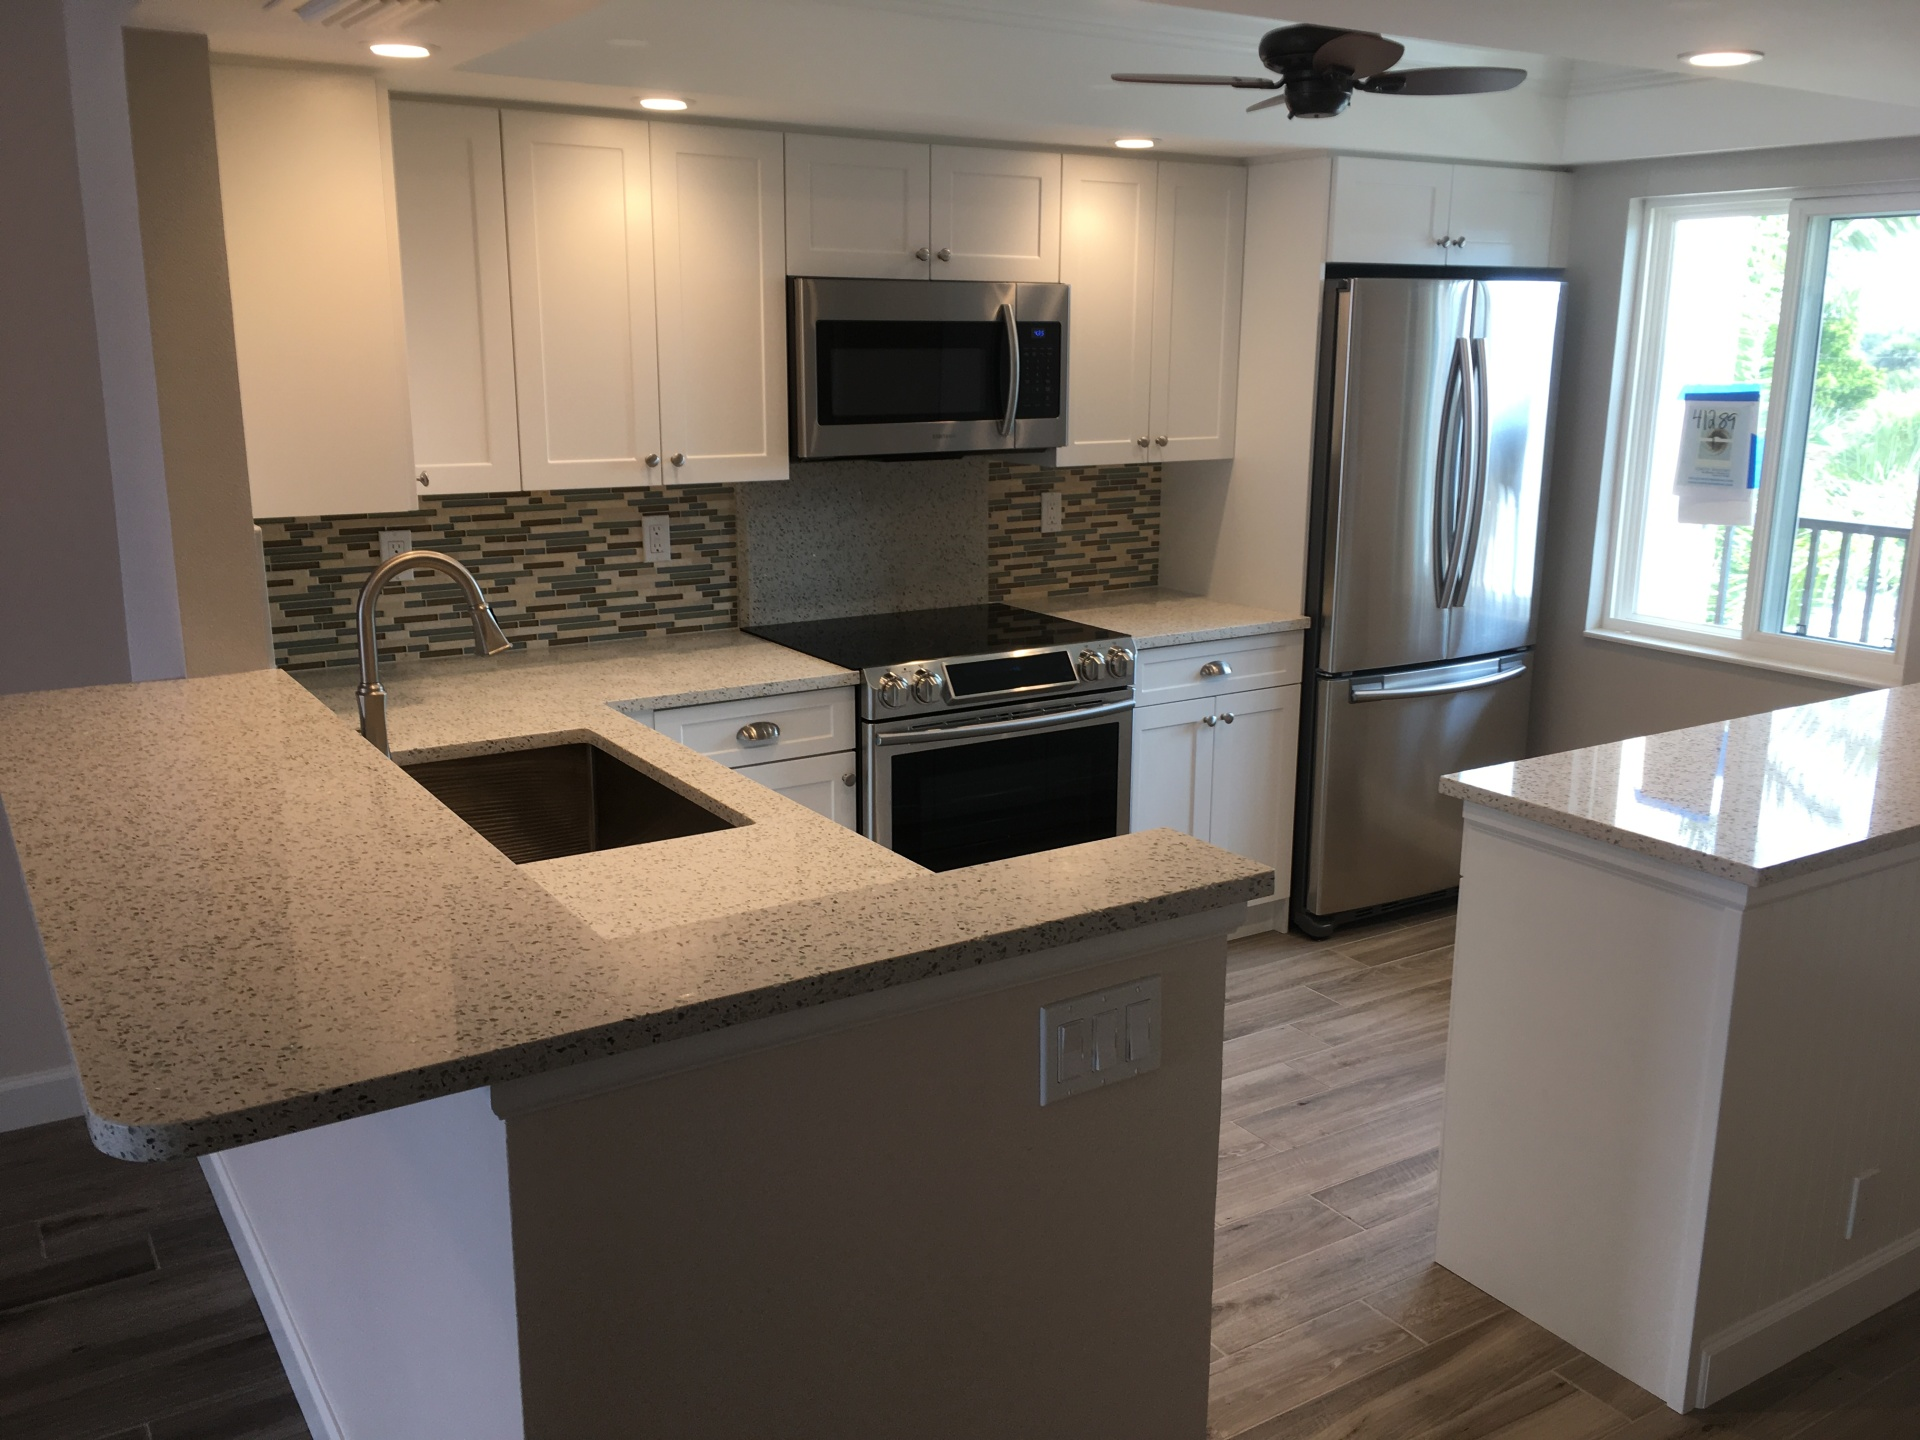 Beach condo kitchen remodel